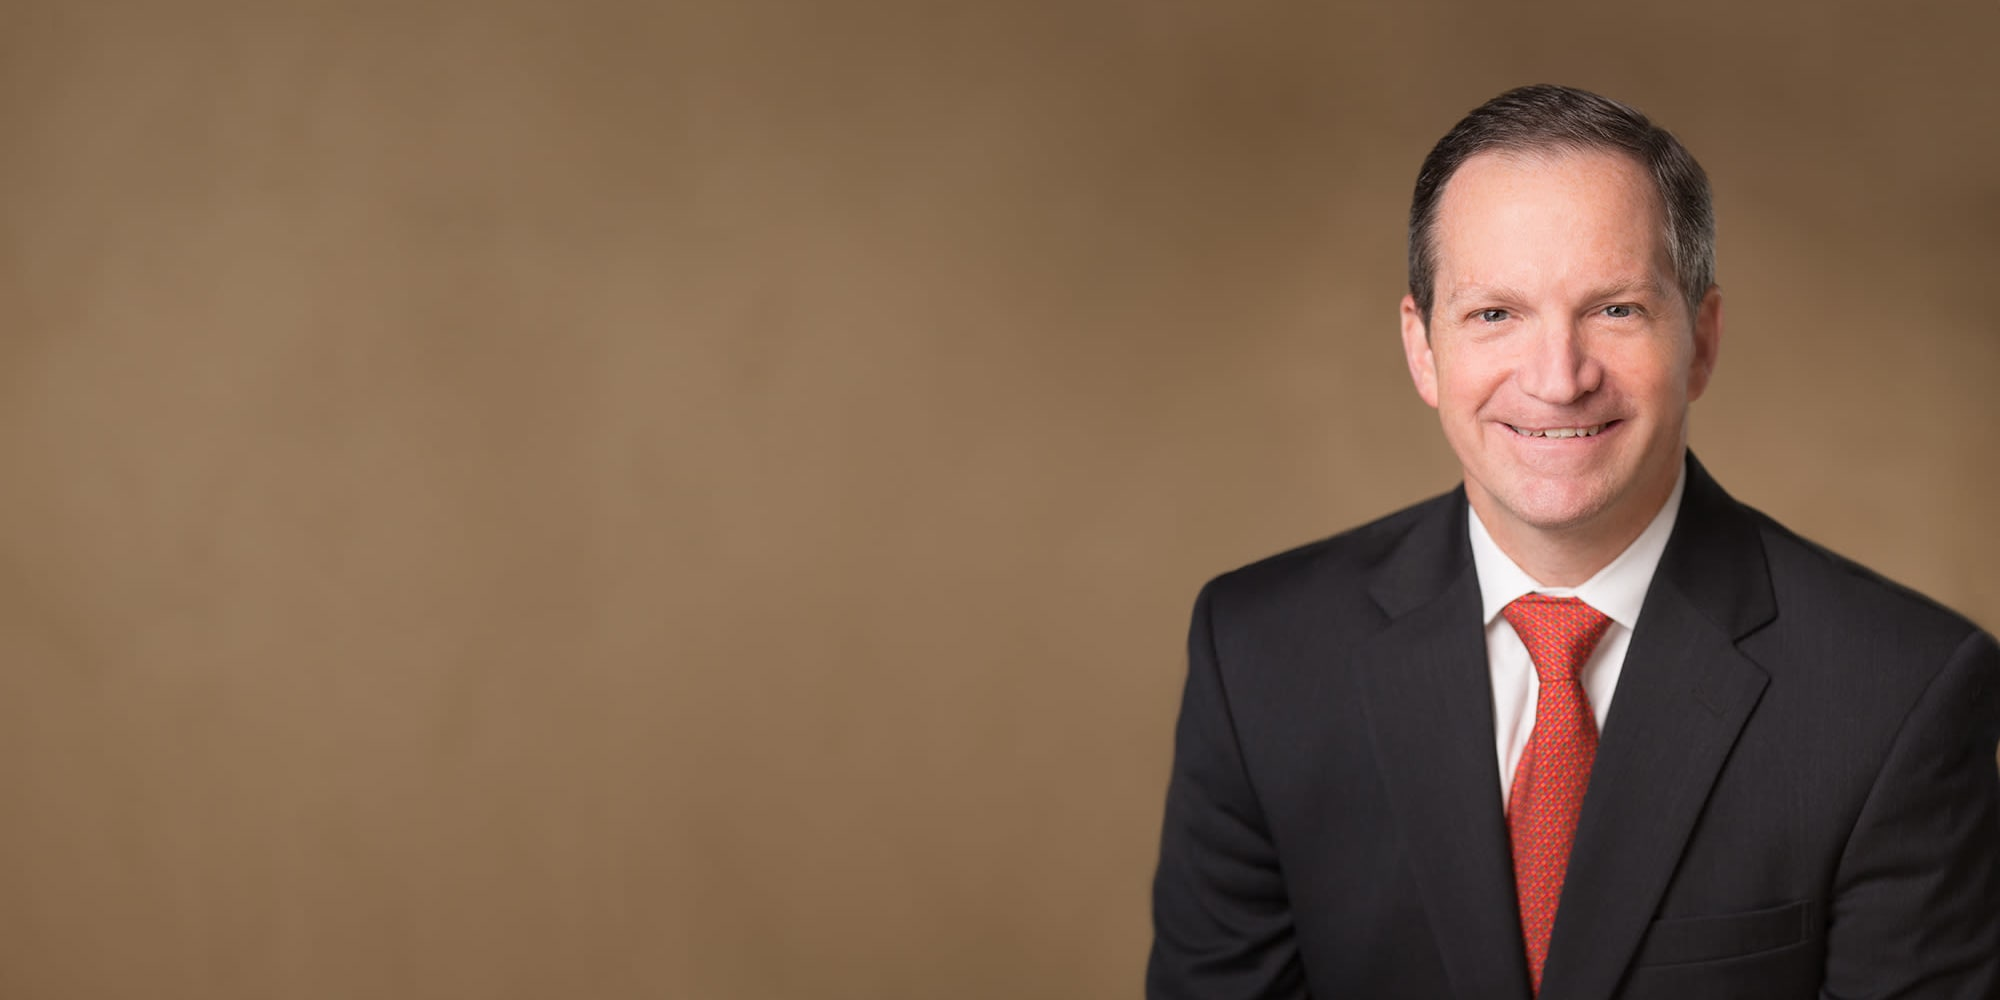 Ed Stoner, Executive Director at Touchmark in the West Hills in Portland, Oregon